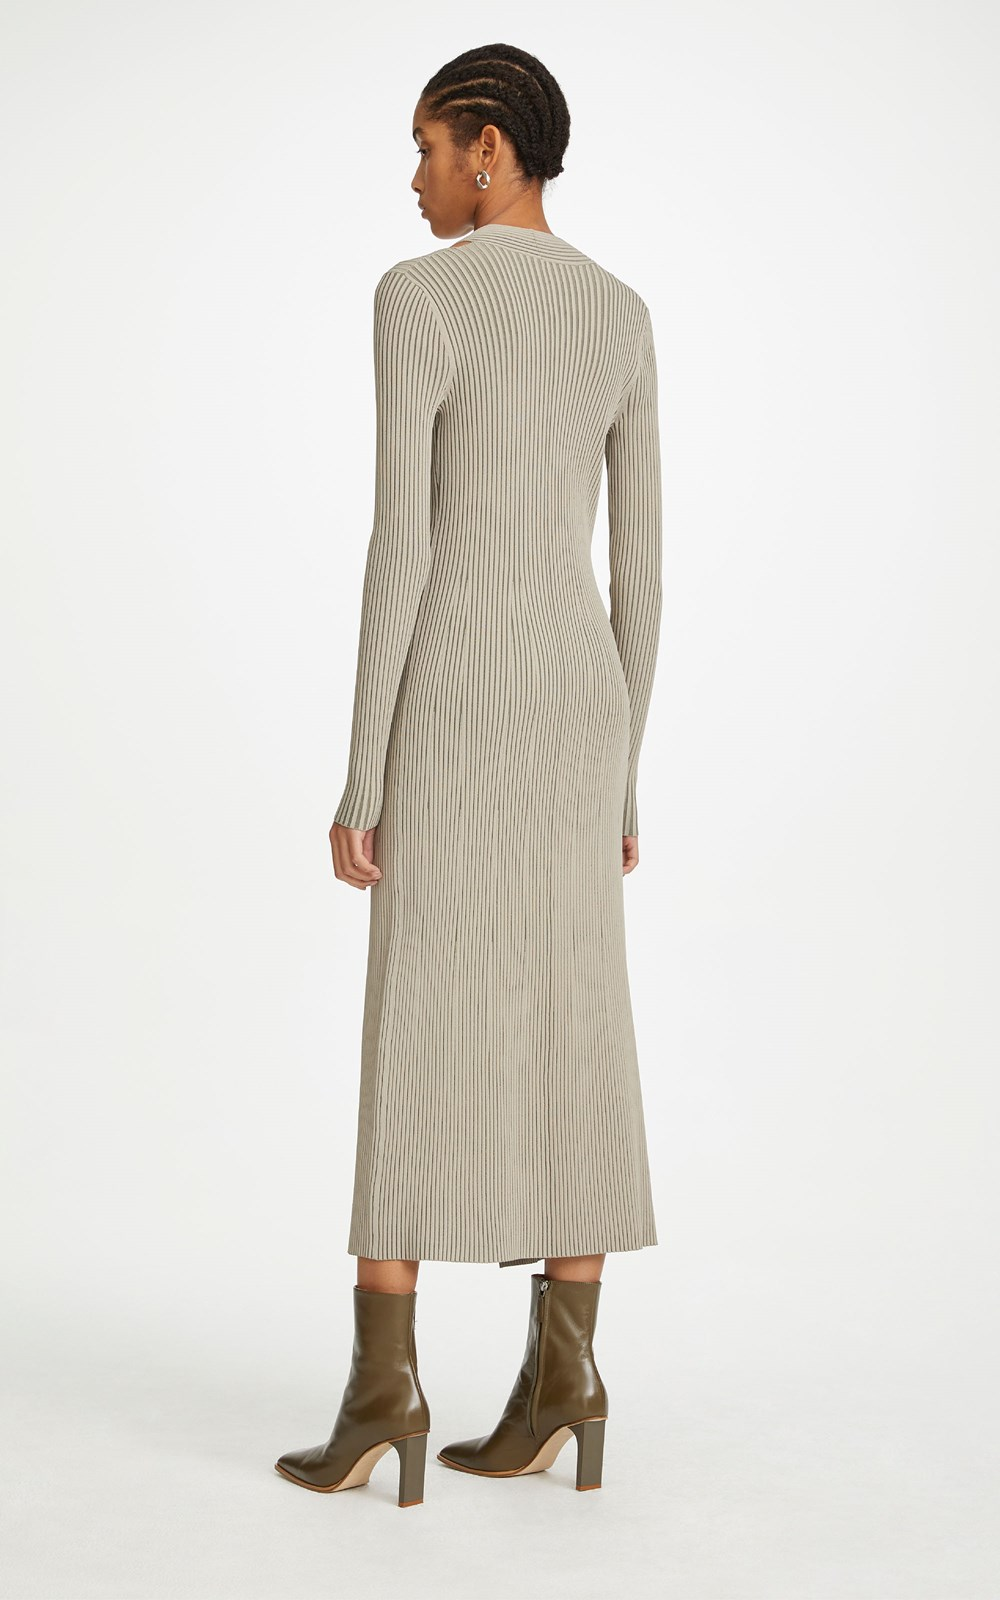 Knitwear | CABLE TWIST DRESS